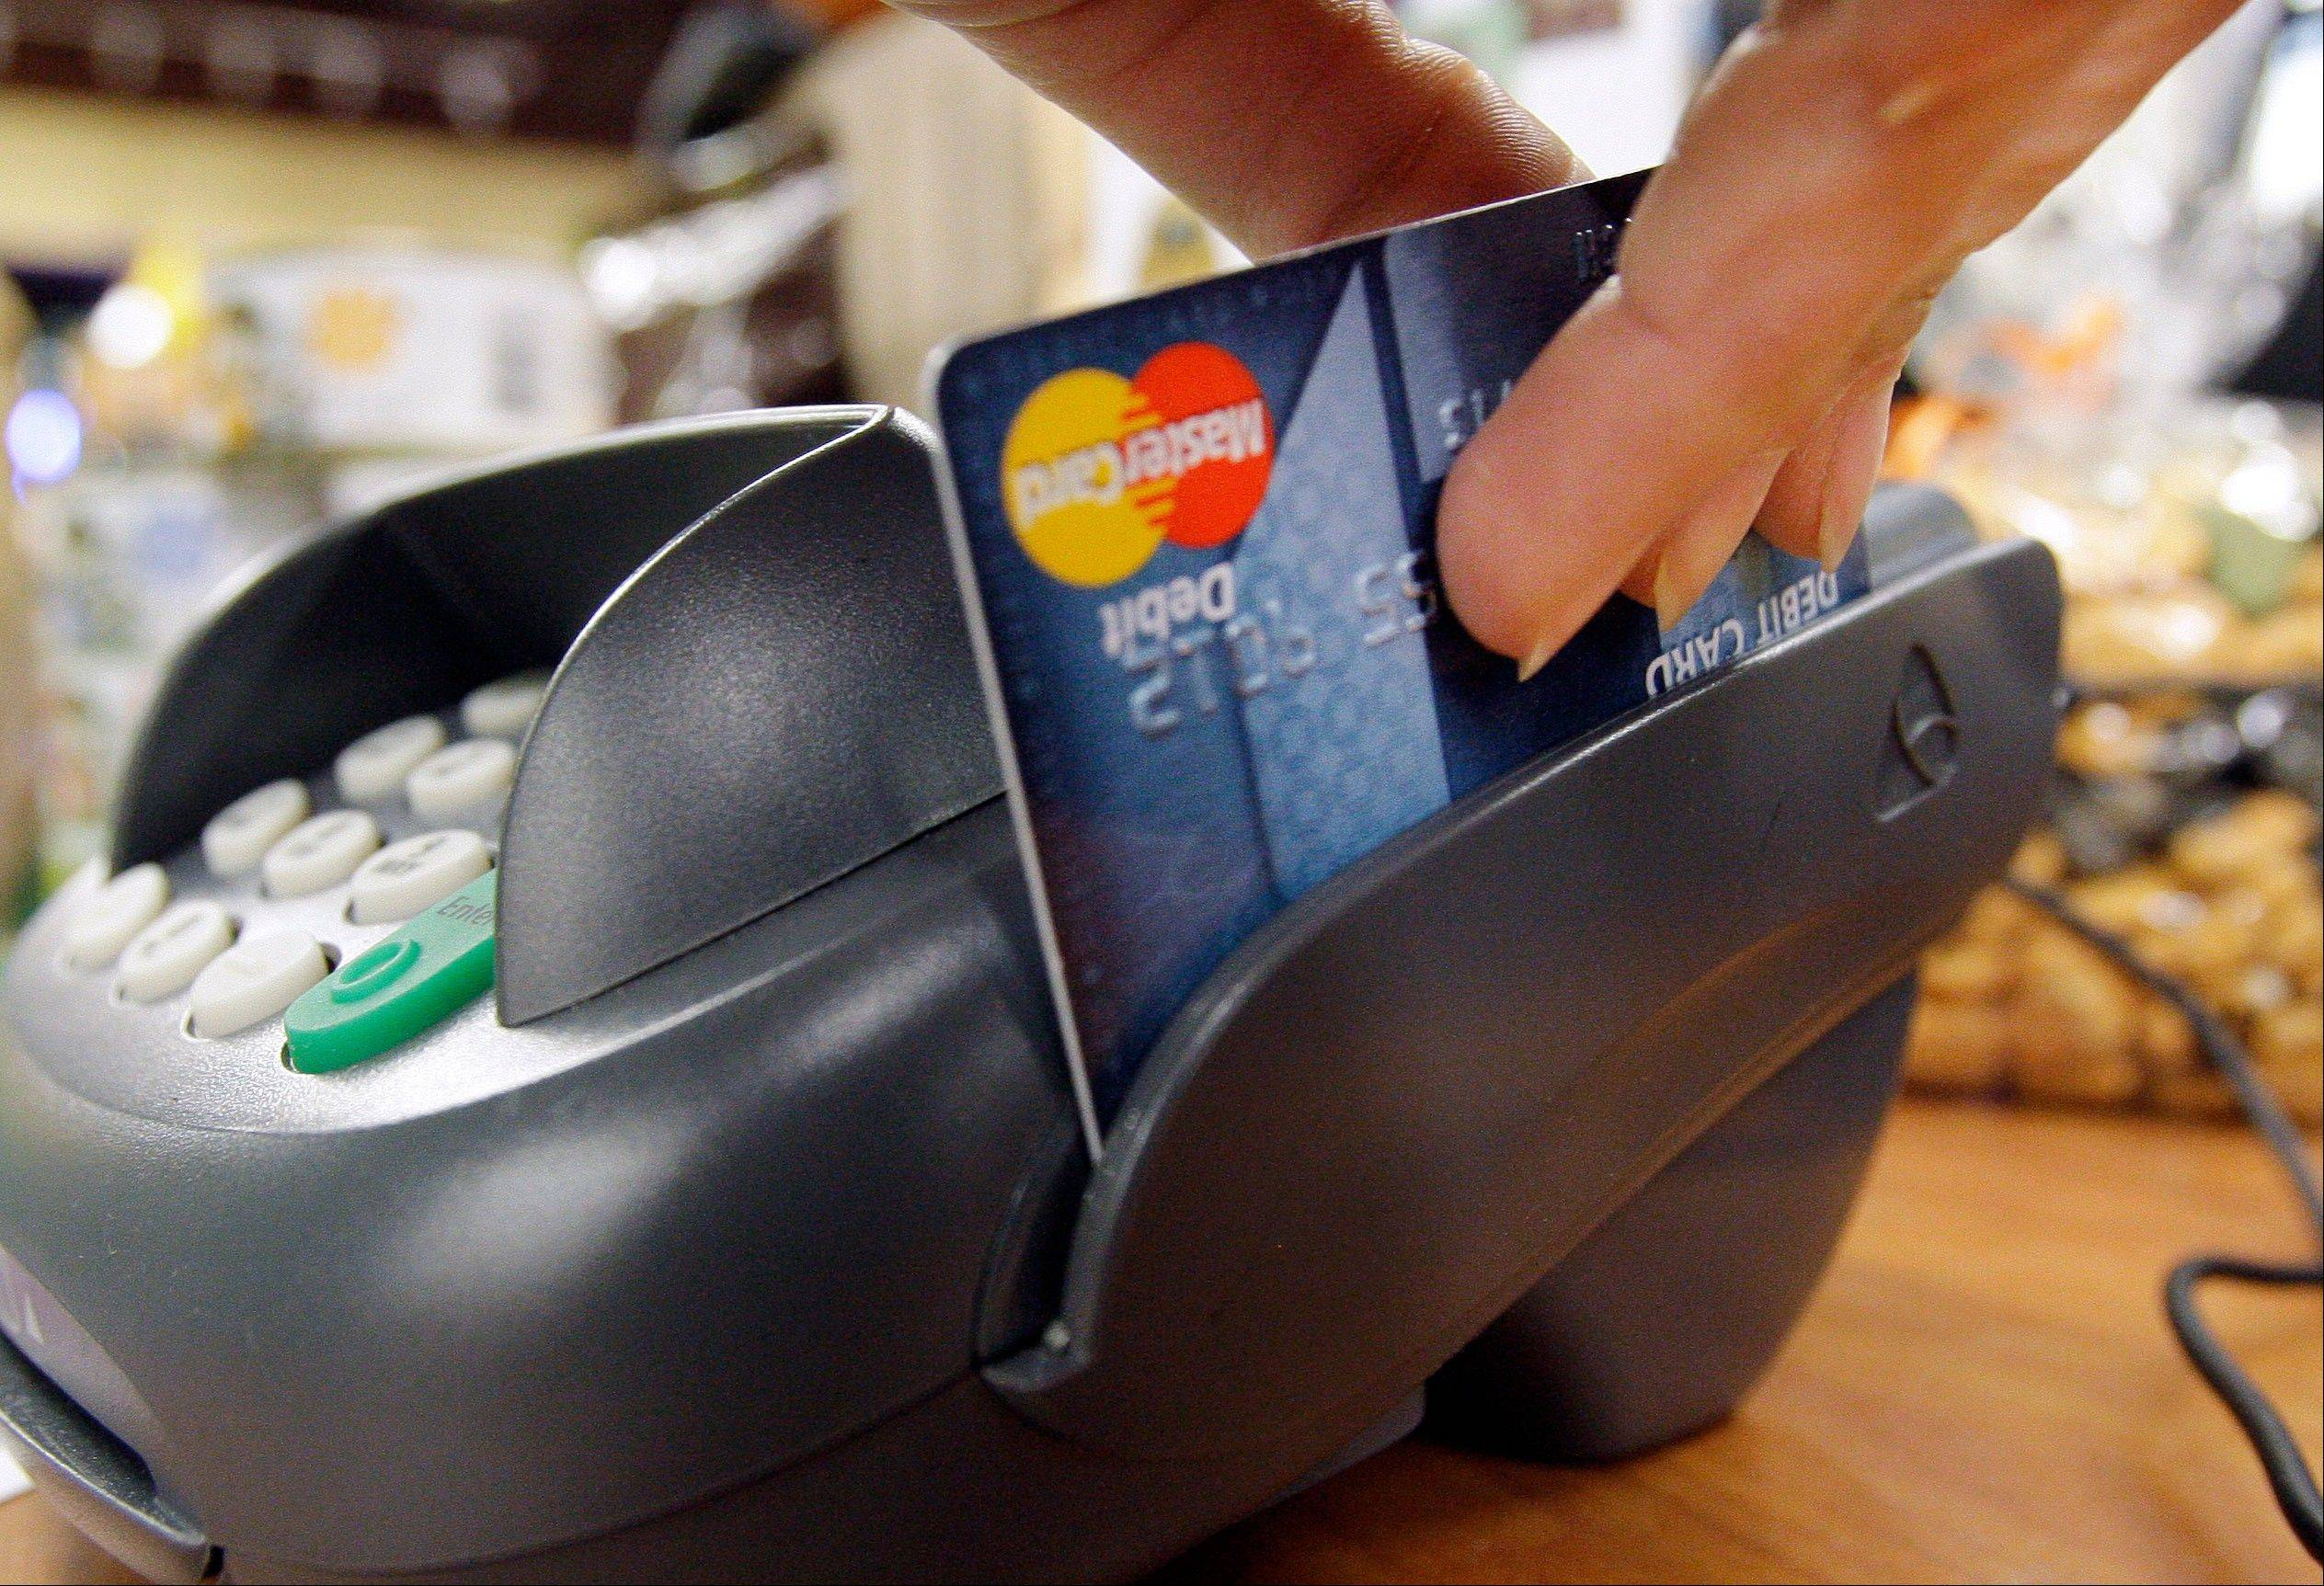 Before you whip out your debit card, consider this: if some crafty thief hacks the store terminal and goes on a shopping spree using your data, you could be held responsible for $500 in charges. That's because debit cards do not share the same consumer protections as credit cards.